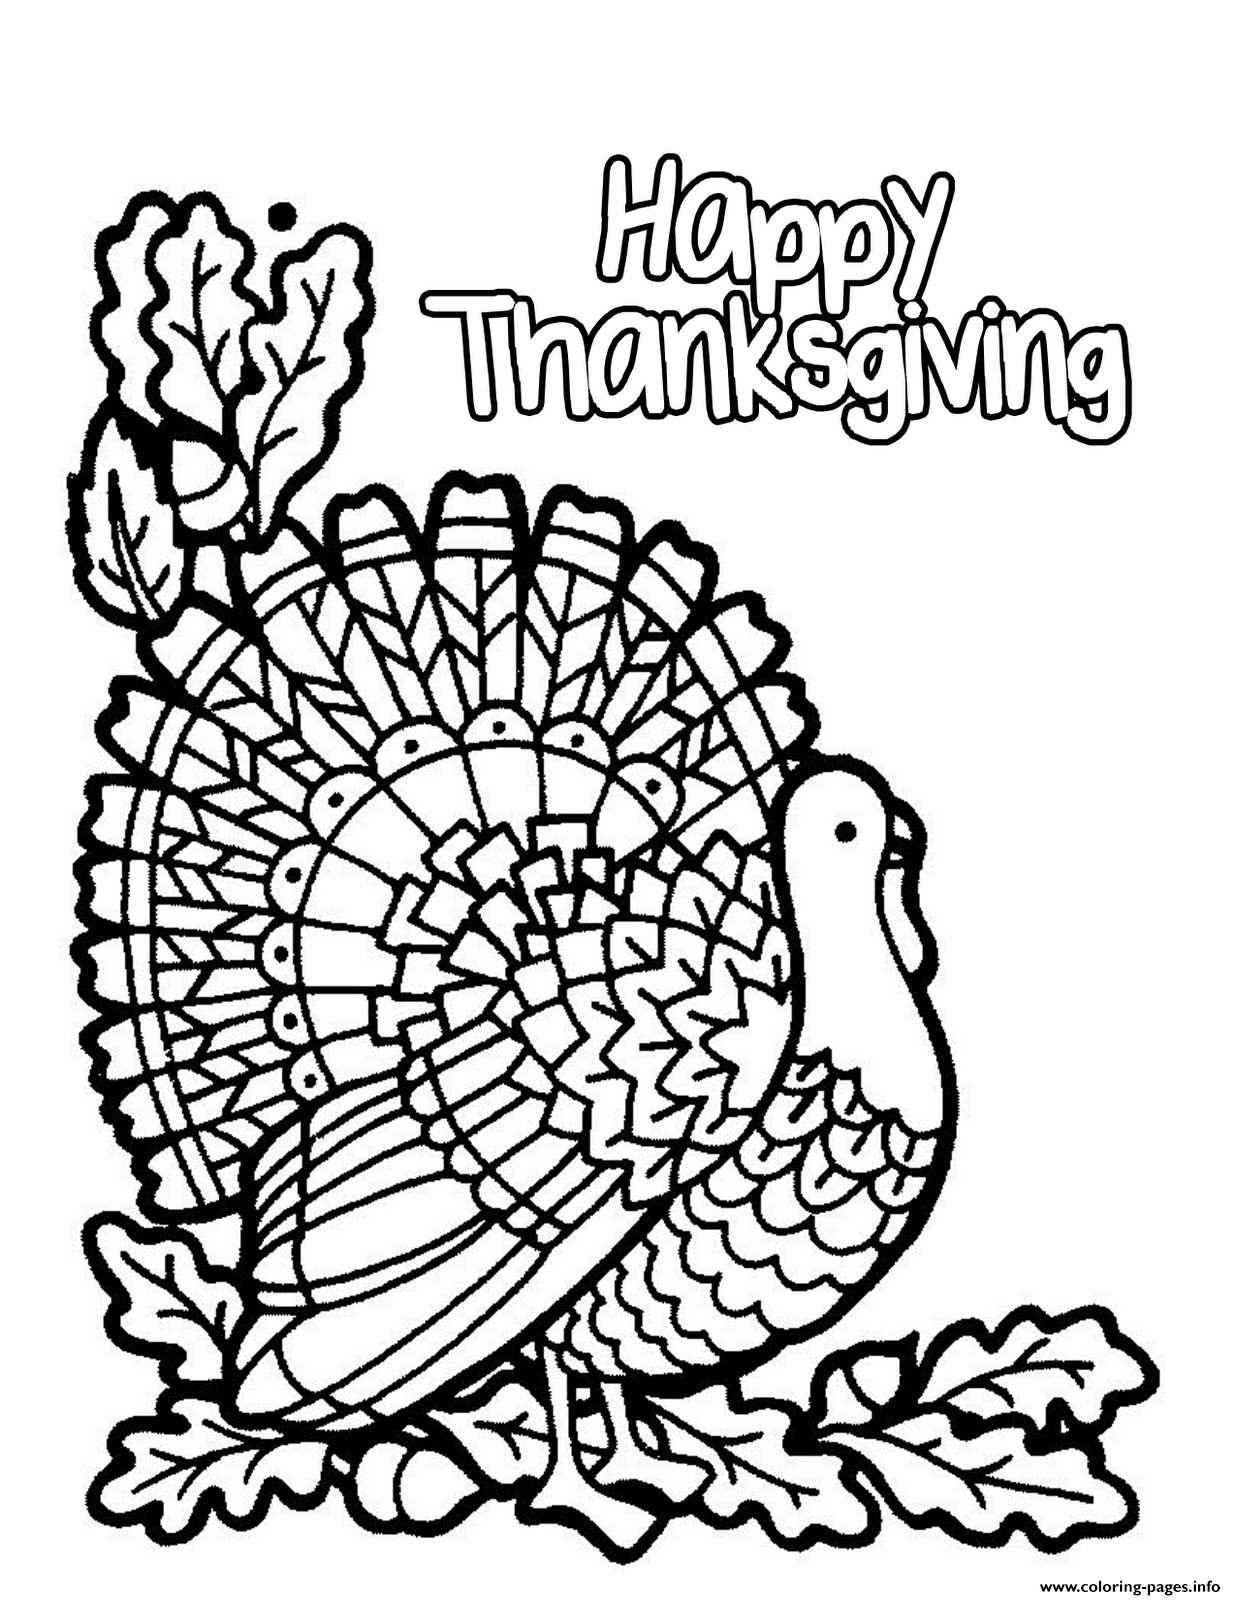 Turkey Happy Thanksgiving S To Printc461 Coloring Pages Print Download 278 Prints